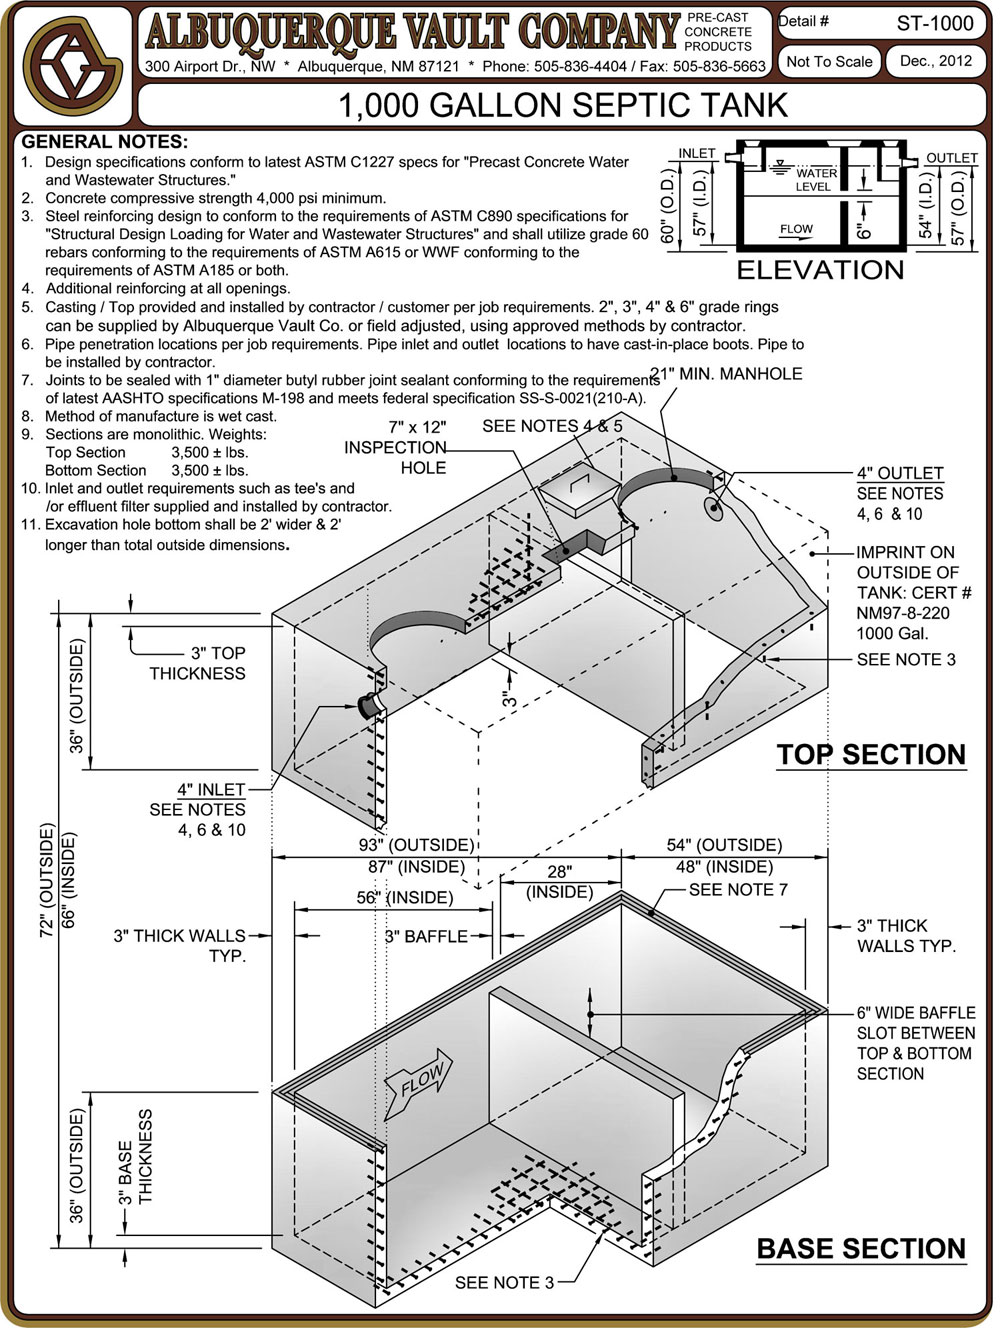 Charming septic tank control wiring diagram pictures for Septic tank basics